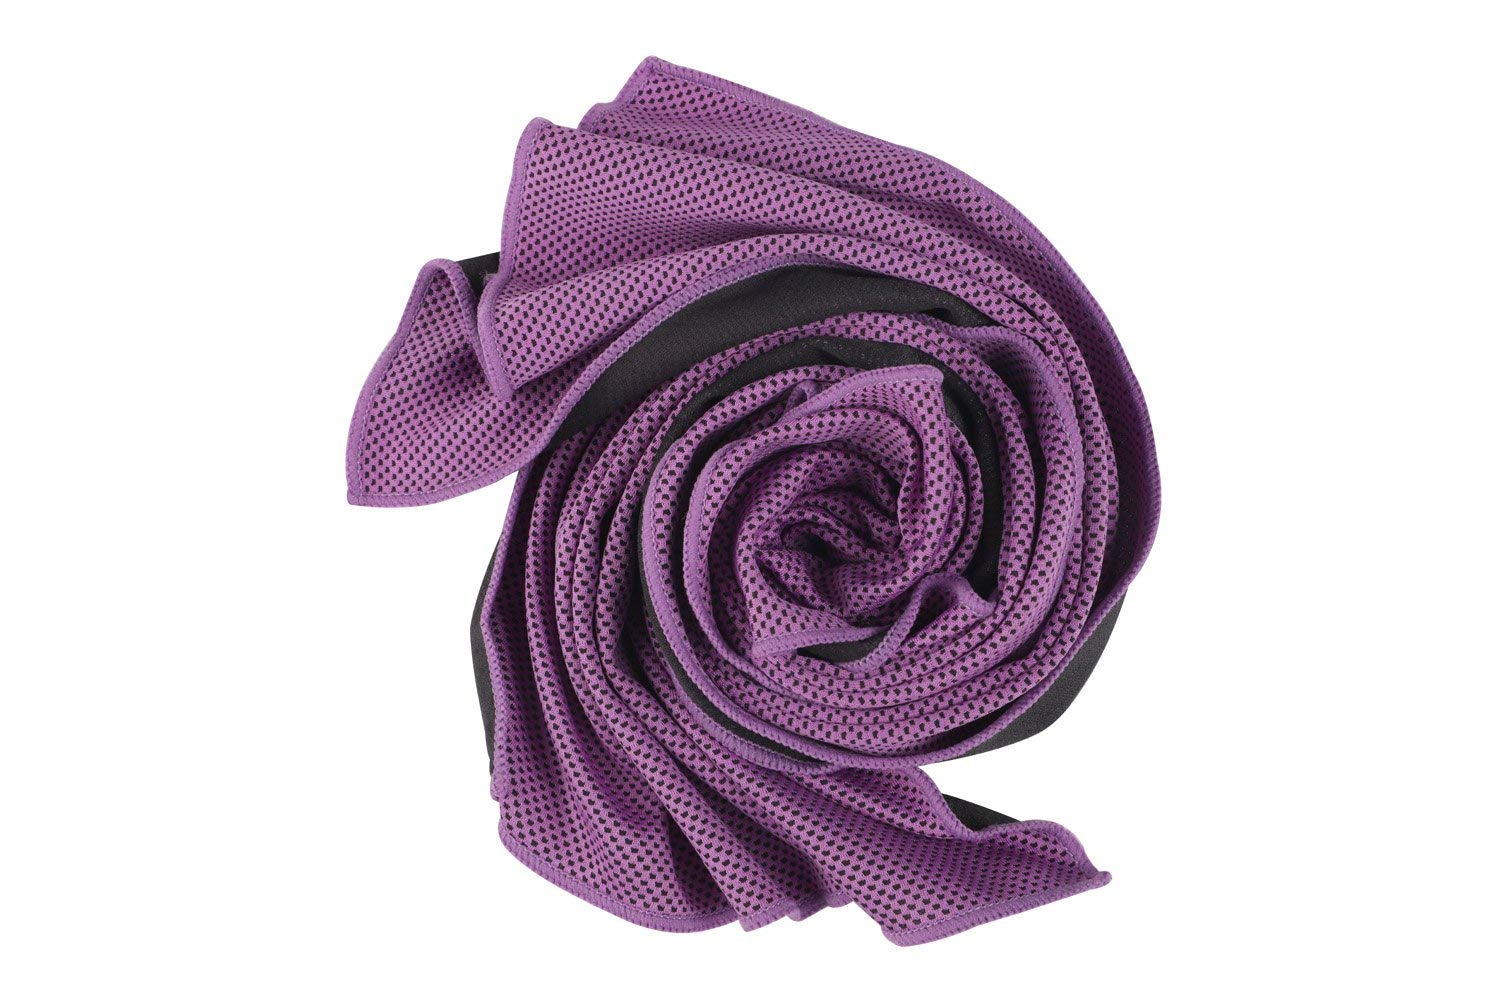 BMCF Cool Towels-Ice Purple Cooling Towels Gym Running Hiking Chilly Pad Instant Cool Sports Fitness Towel for Yoga Golf Travel (40